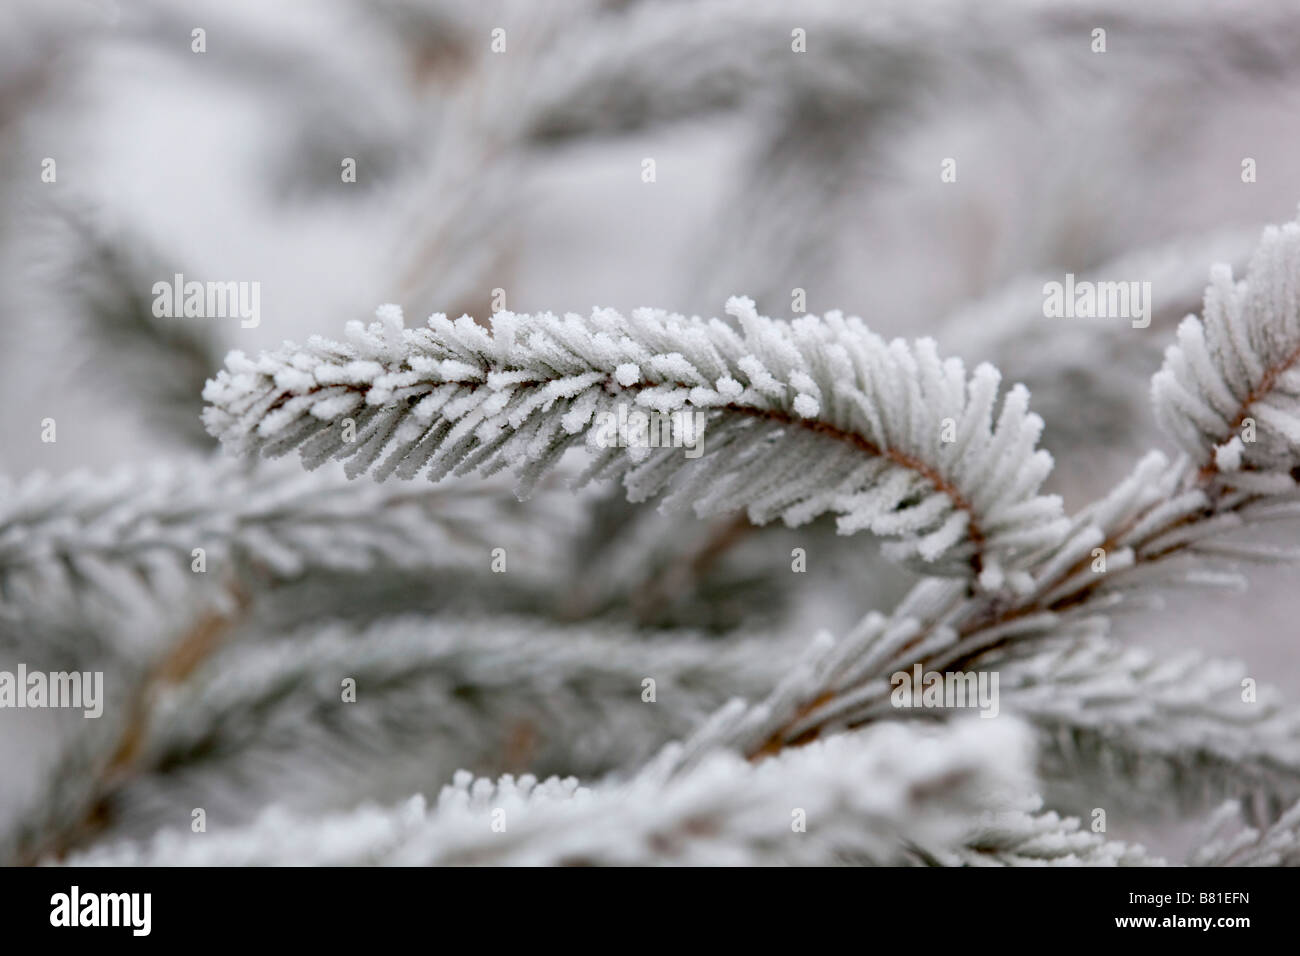 frost crystals on pine needles norway spruce - Stock Image